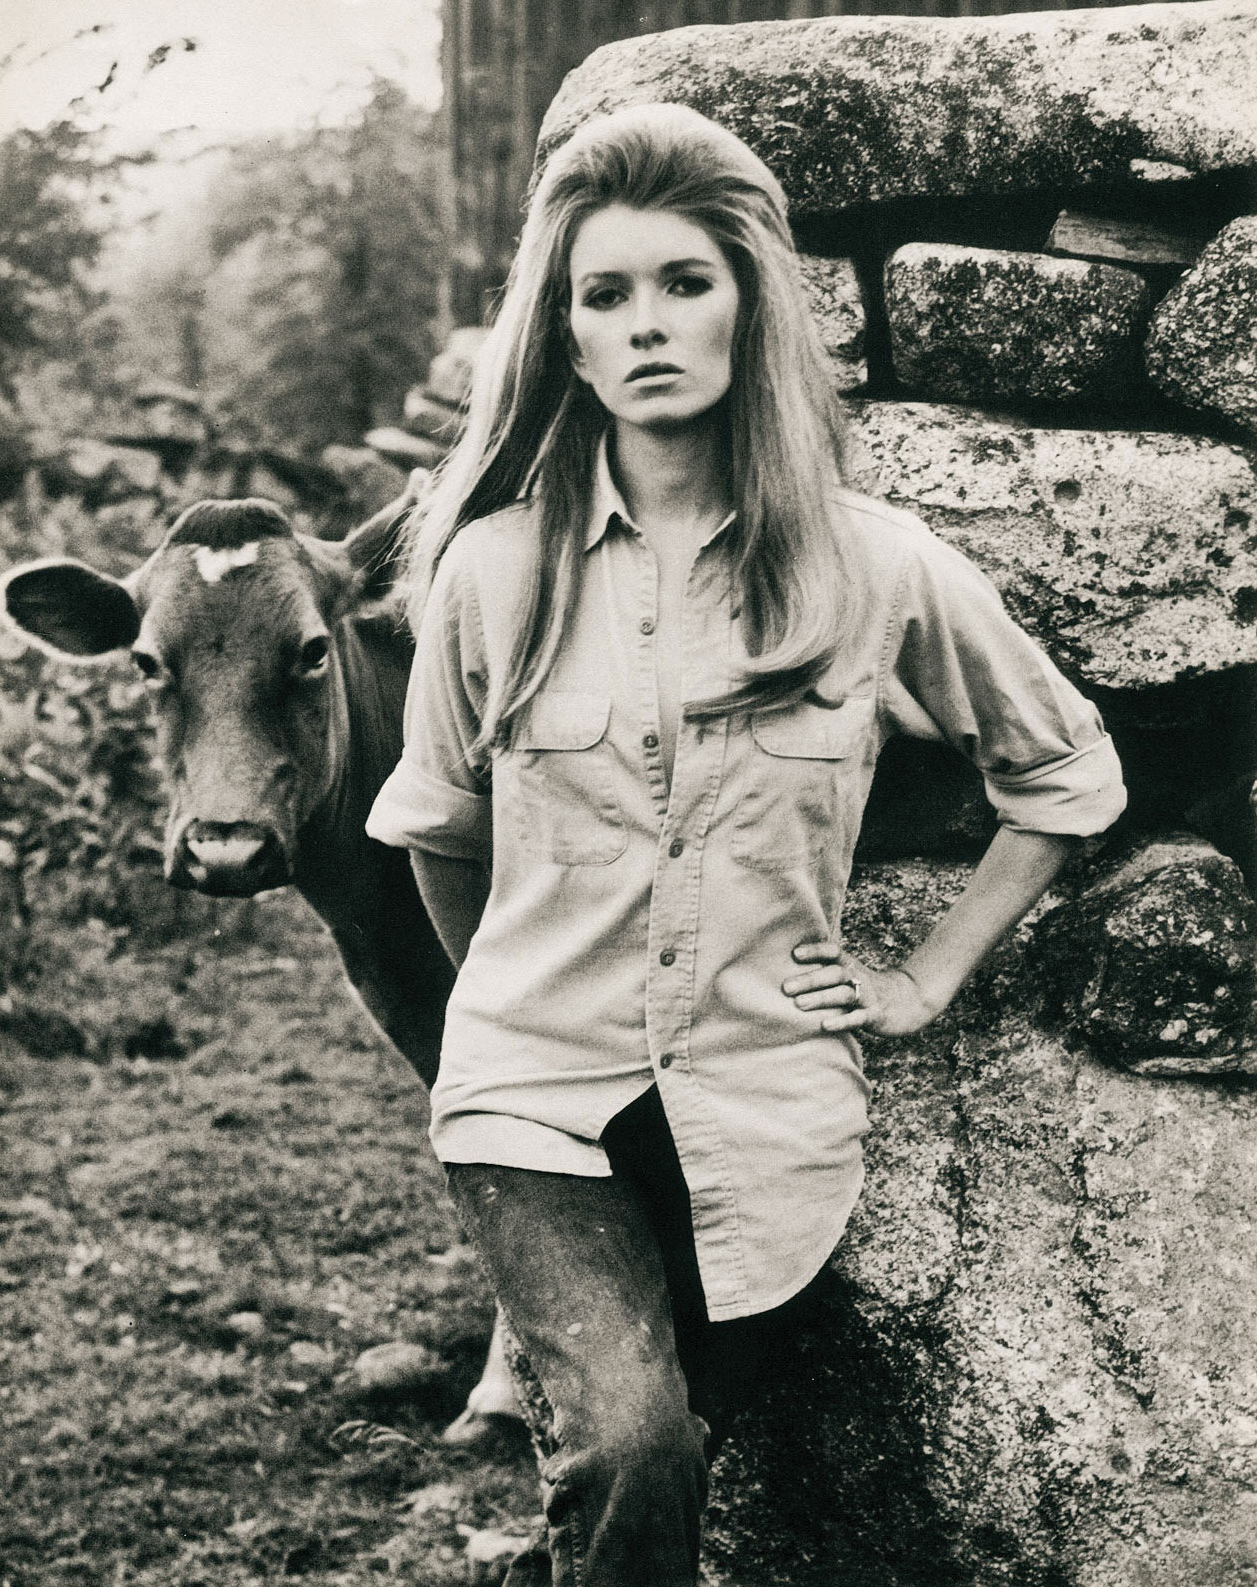 Martha Stewart Vintage Modeling Photo, Barnyard Animal